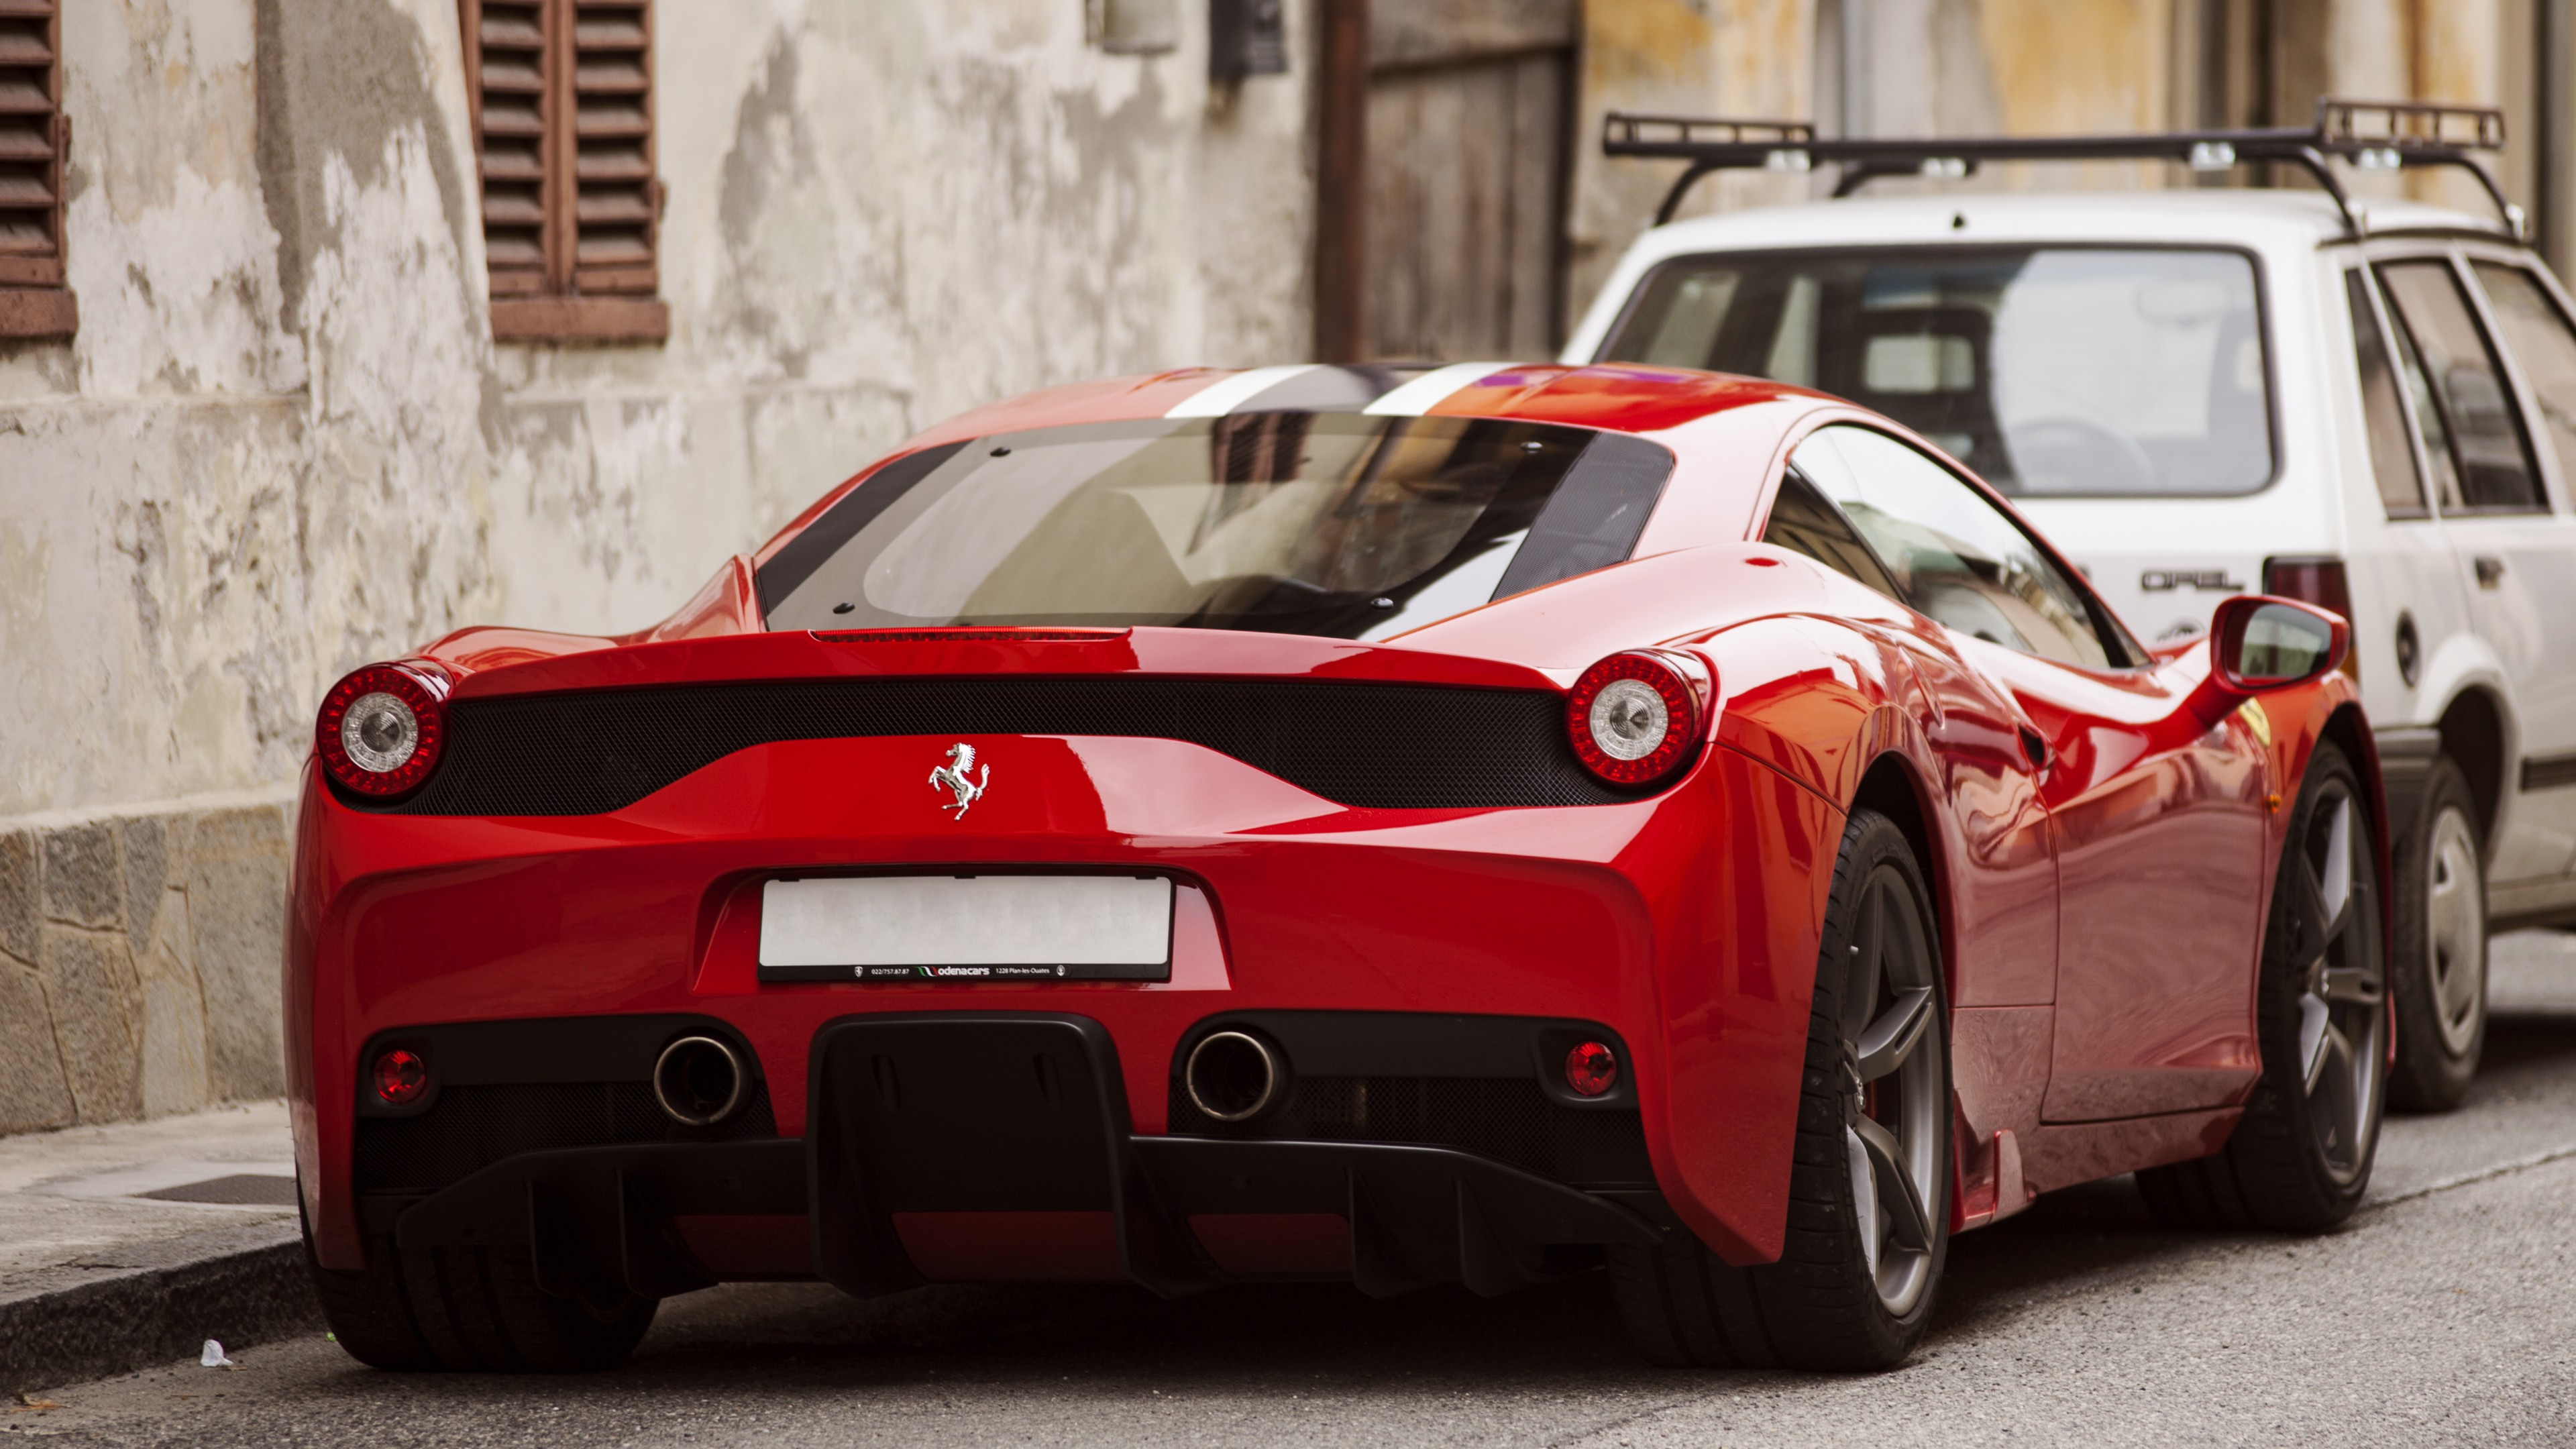 Wallpaper Ferrari 458 Speciale Supercar Back View Red HD Style Wallpapers Download free beautiful images and photos HD [prarshipsa.tk]